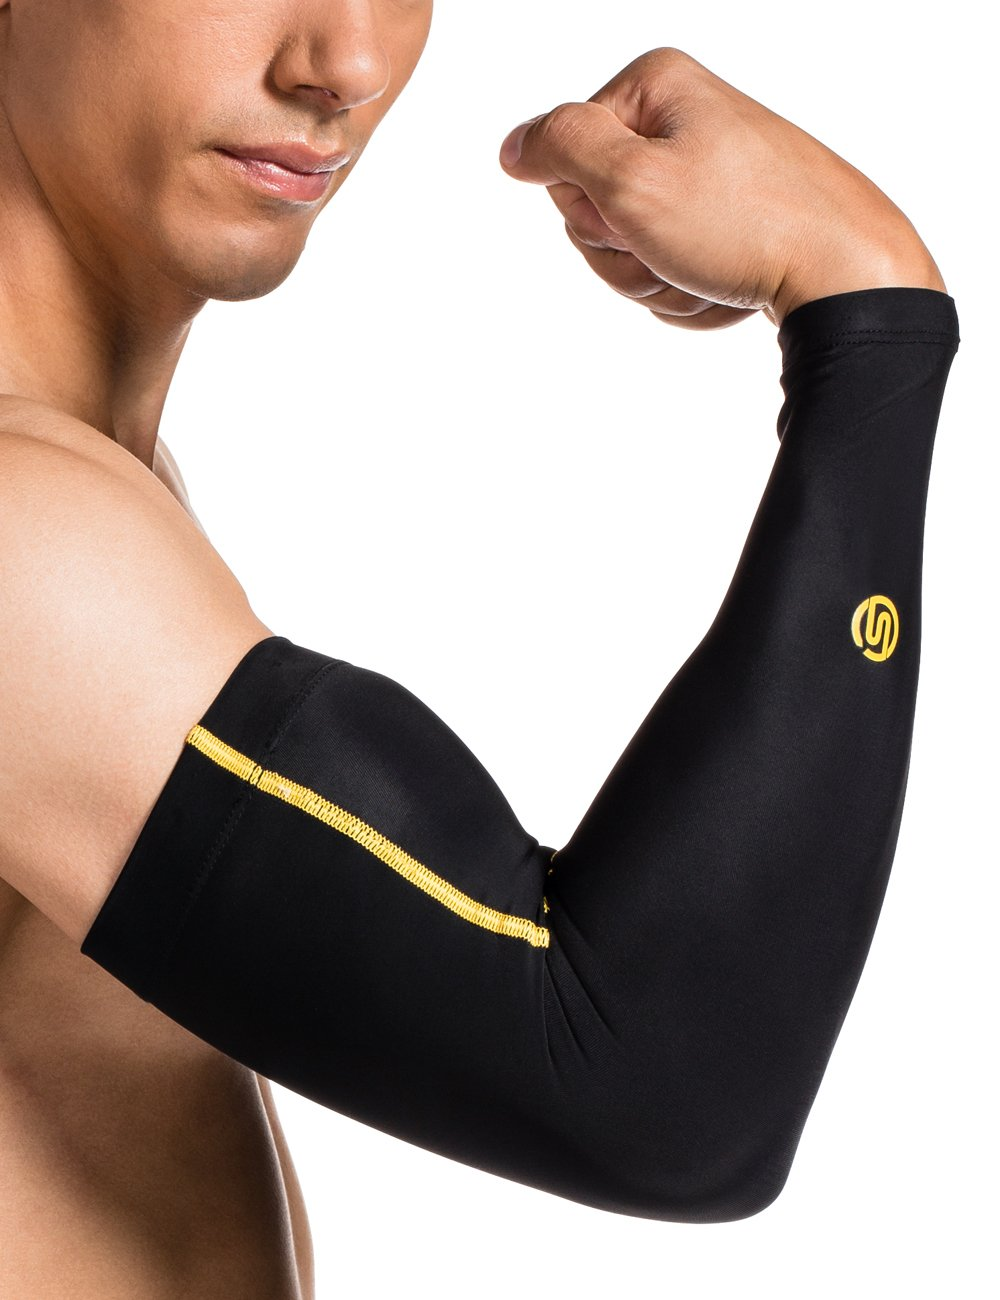 SKINS Men's Essentials Compression Sleeves, Black/Yellow, X-Small by Skins (Image #3)